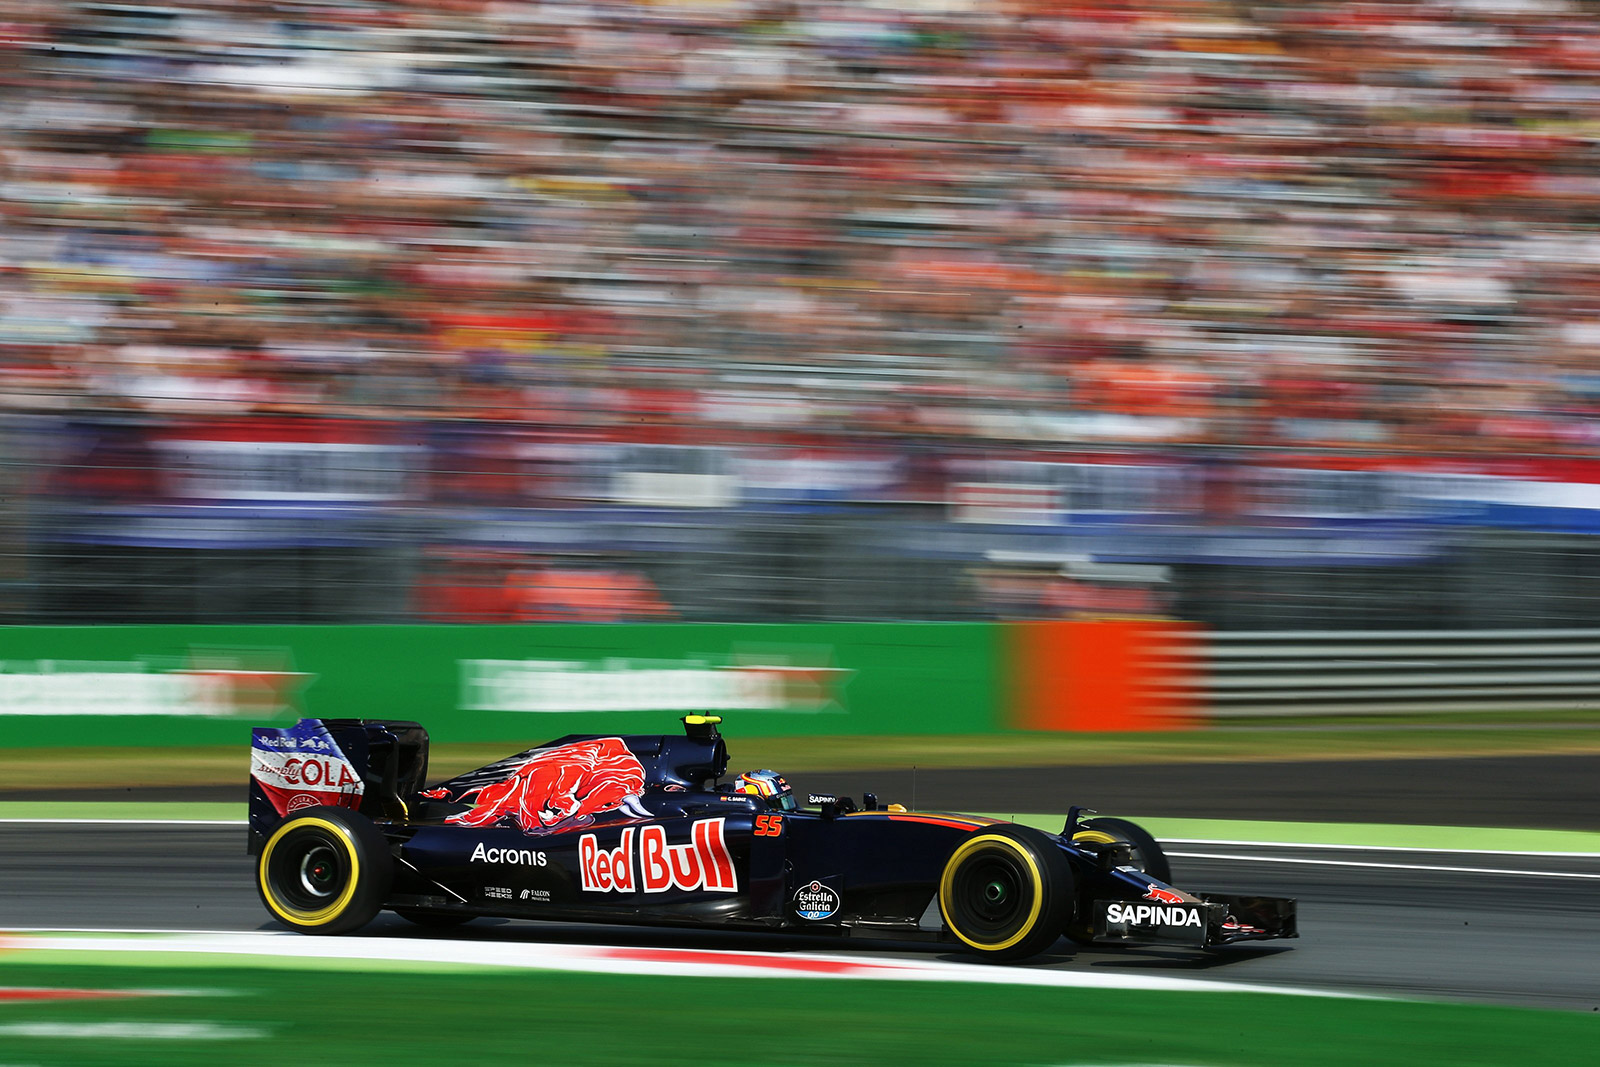 Carlos Sainz Jr. driving the Scuderia Toro Rosso STR11 during practice at the Italian Grand Prix at Autodromo on September 2, 2016. (Getty Images / Red Bull content Pool)